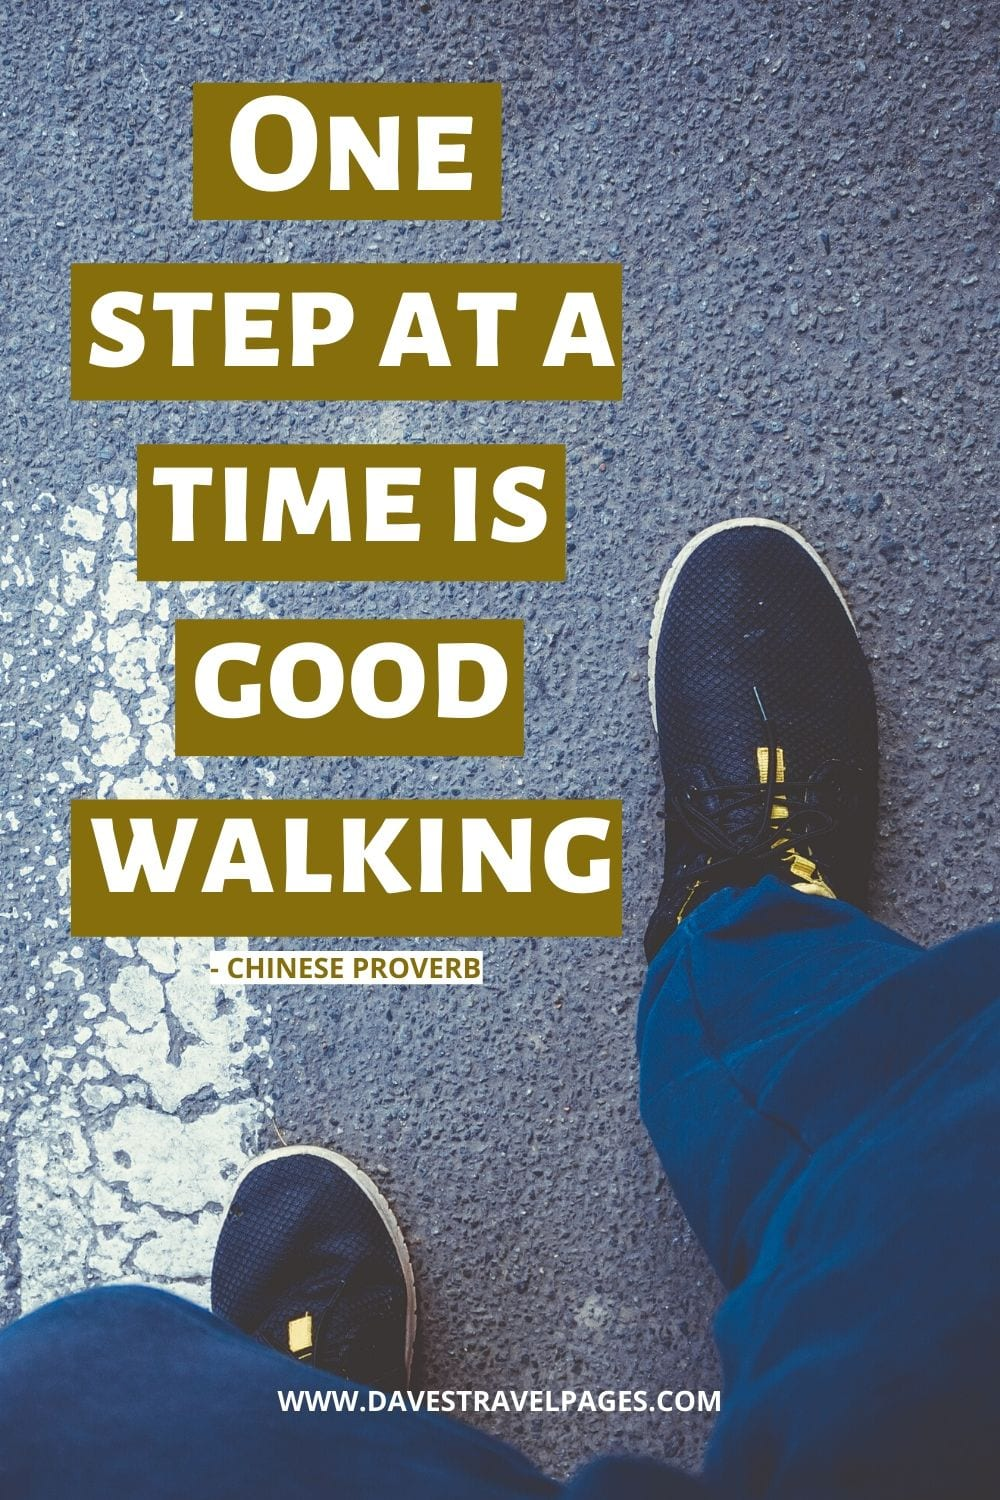 Walking quotes - One step at a time is good walking - Chinese Proverb